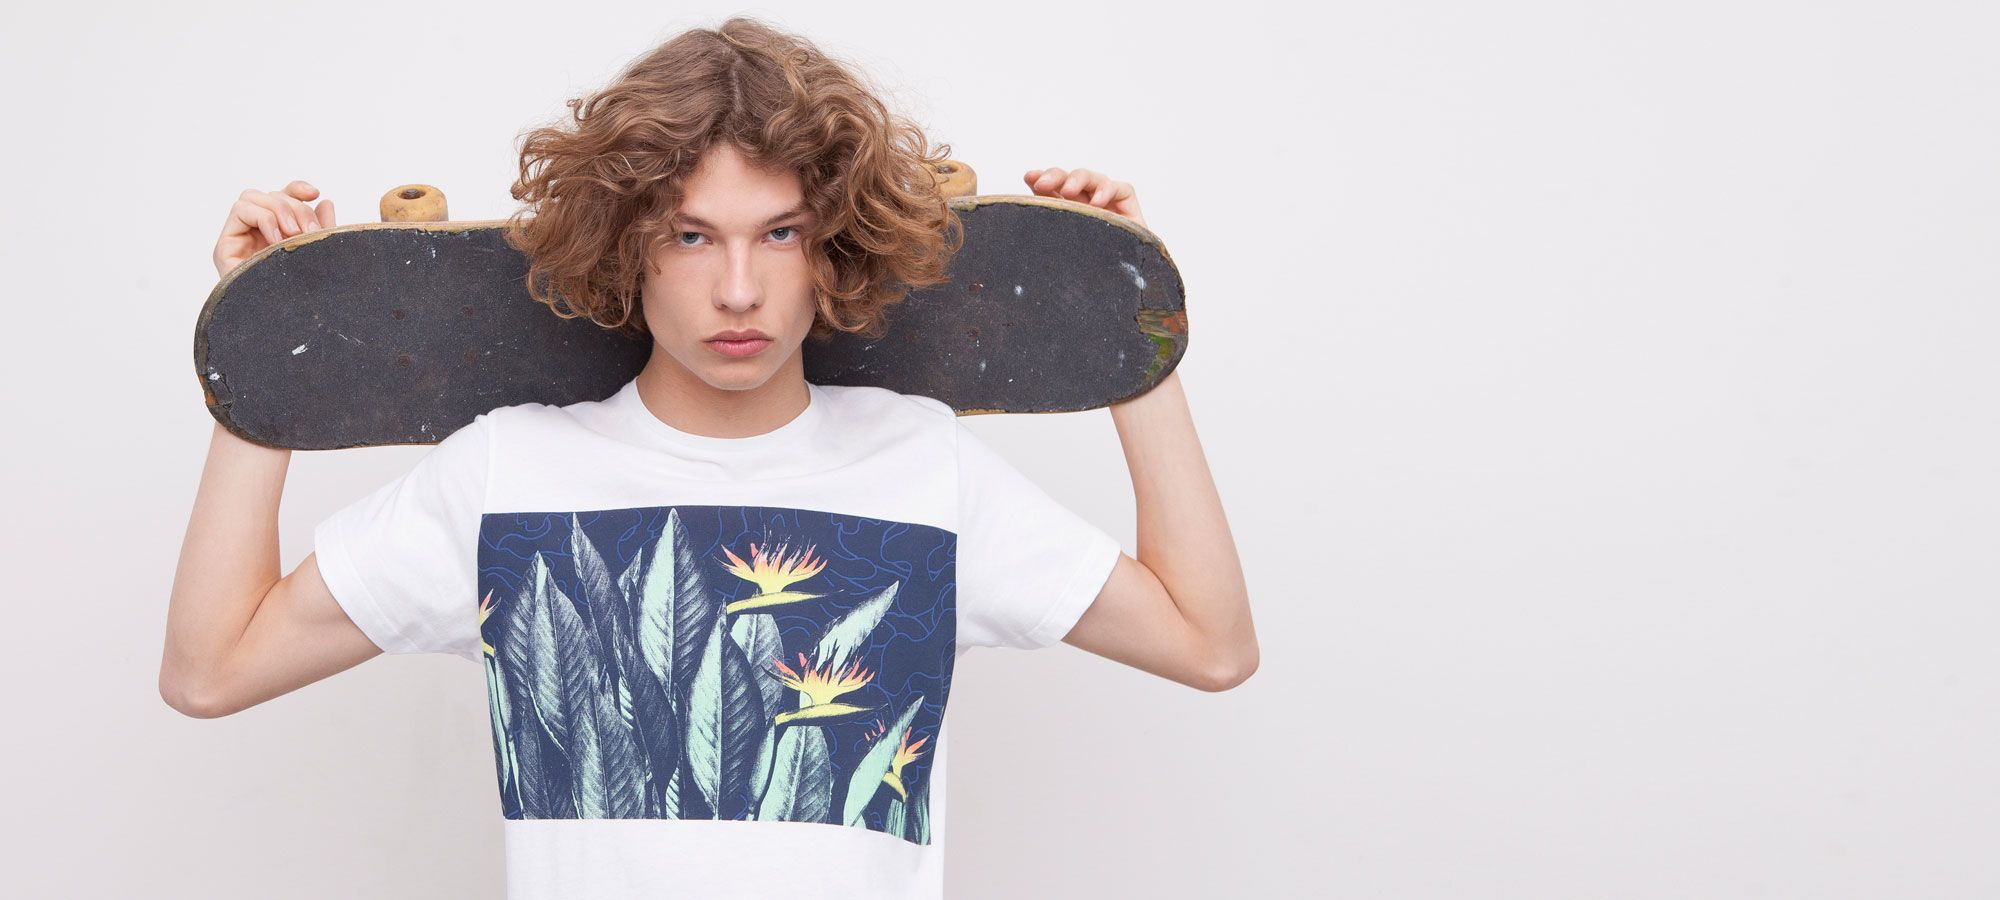 T-SHIRT WITH FLORAL PANEL - T-SHIRTS - MAN - PULL&BEAR Germany